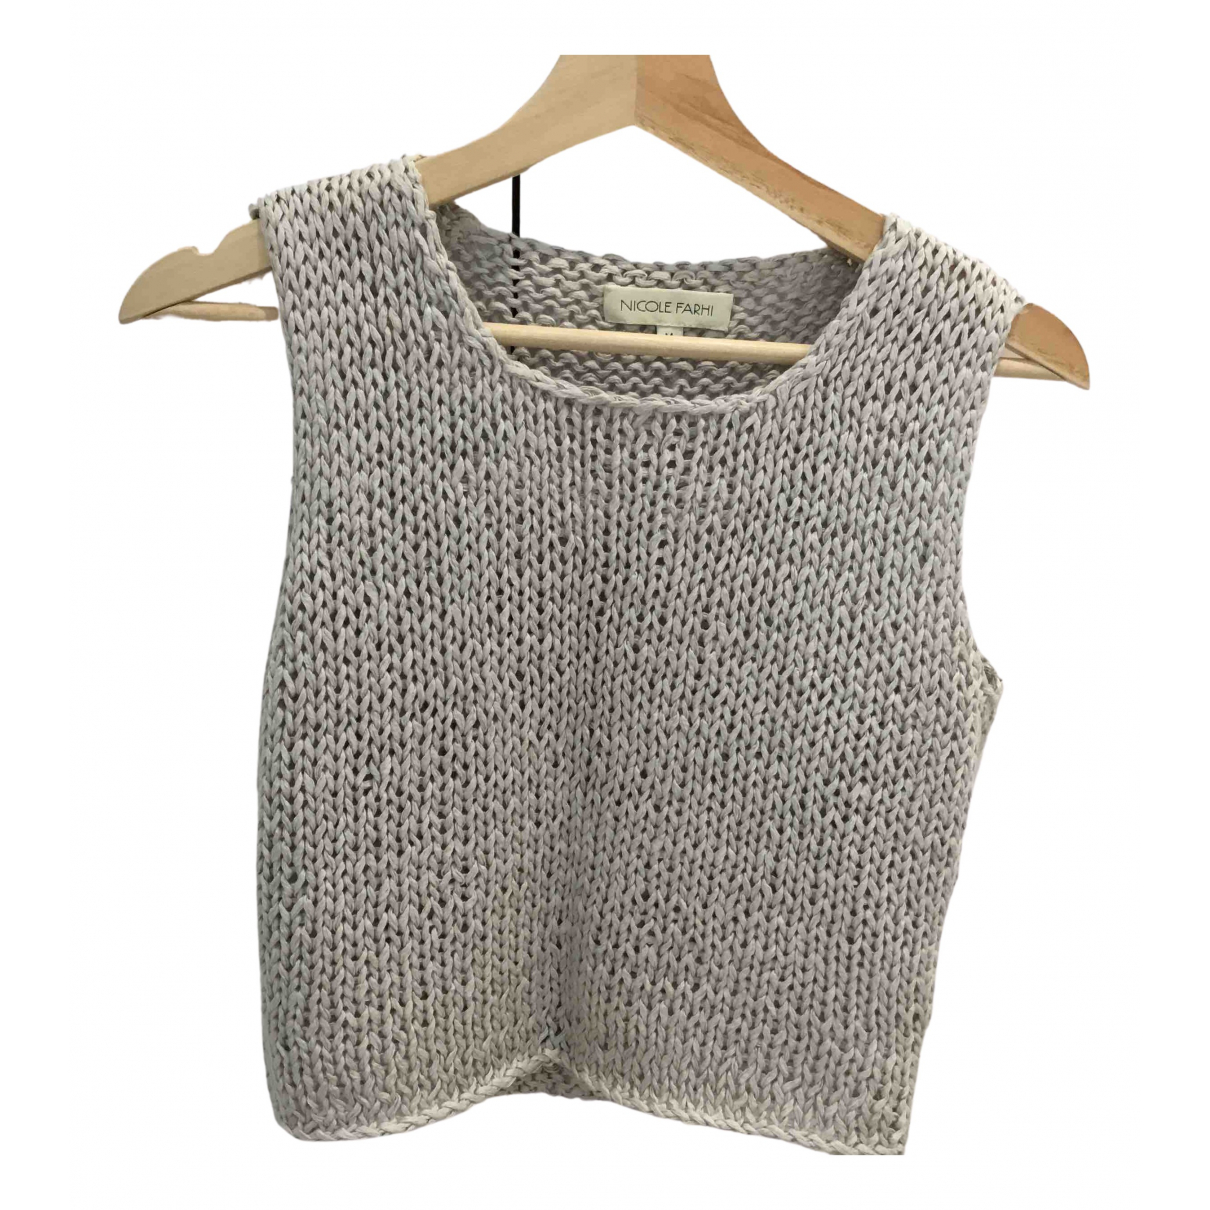 Nicole Farhi N Grey Cotton Knitwear for Women L International